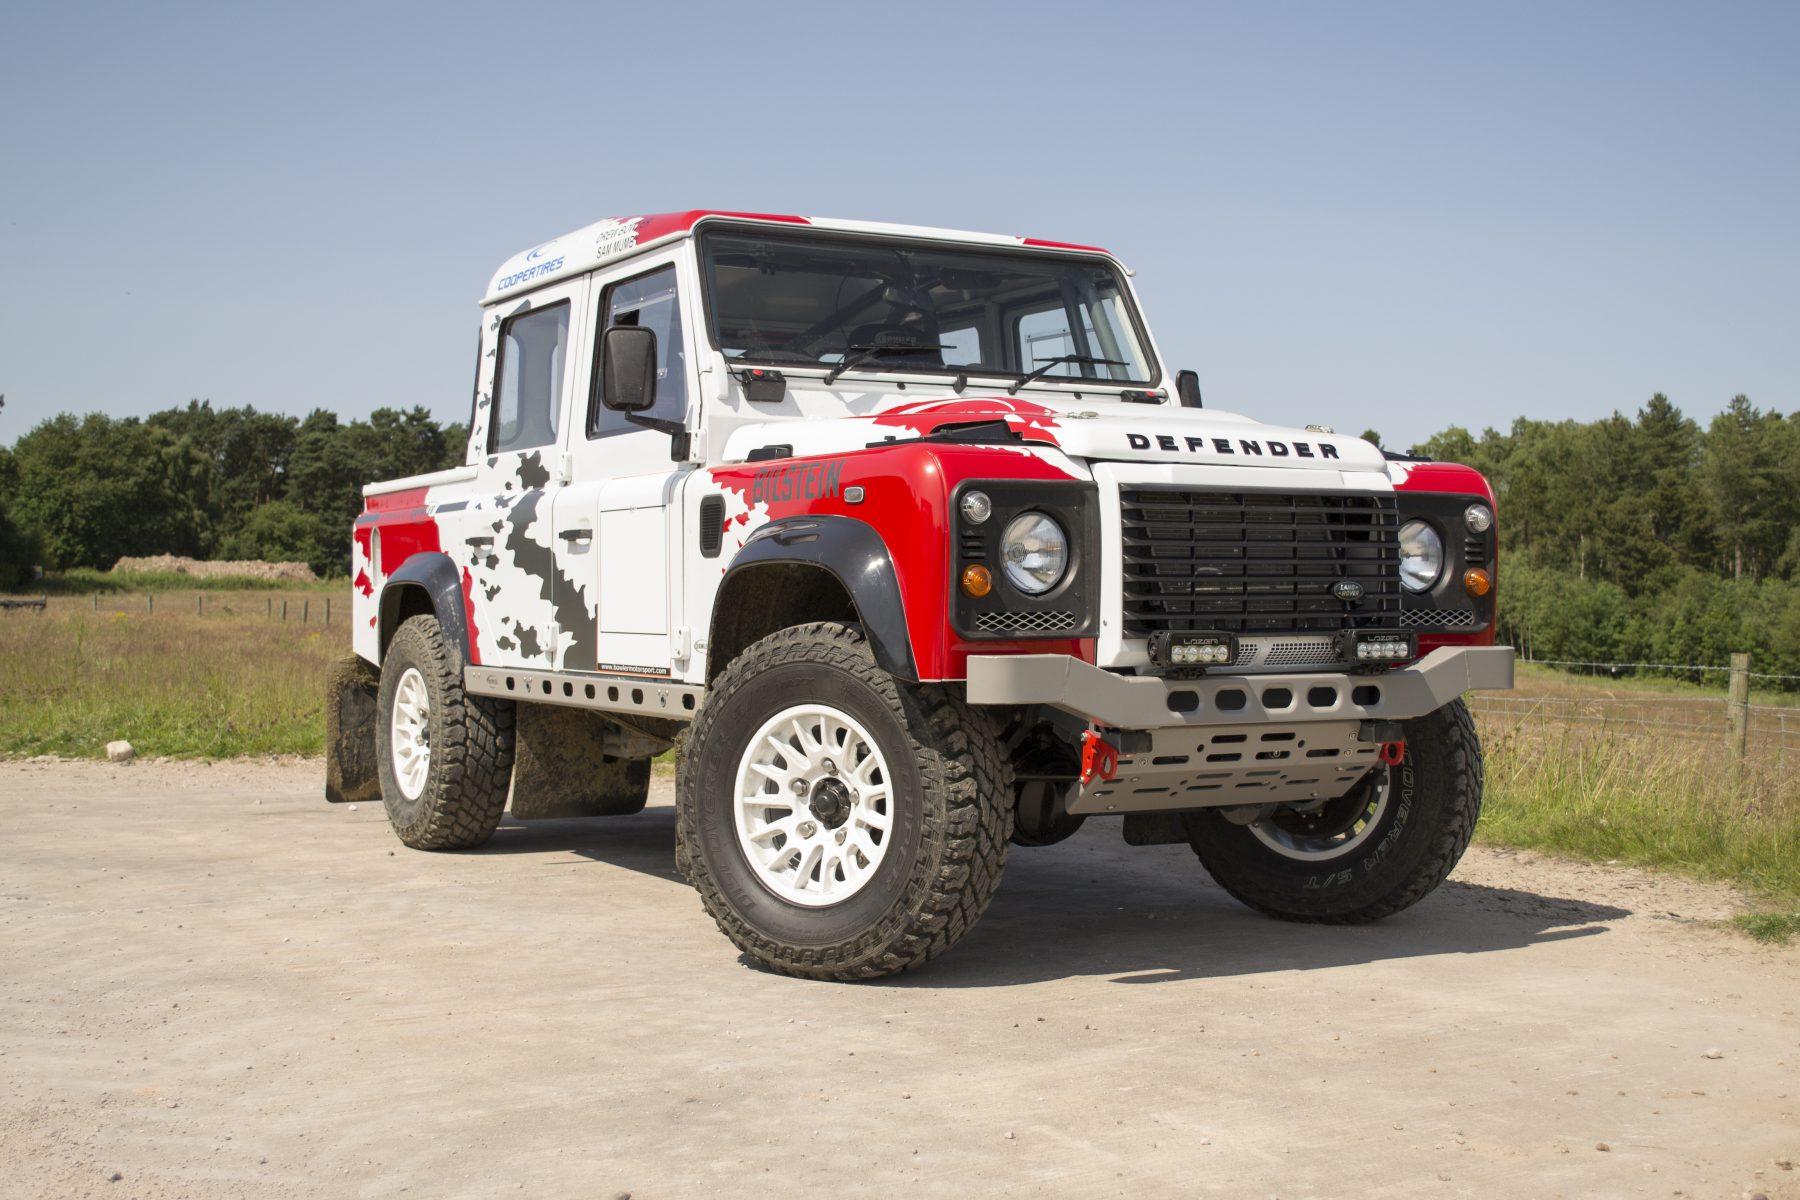 Bowler V6 110 Defender Prototype Race Car